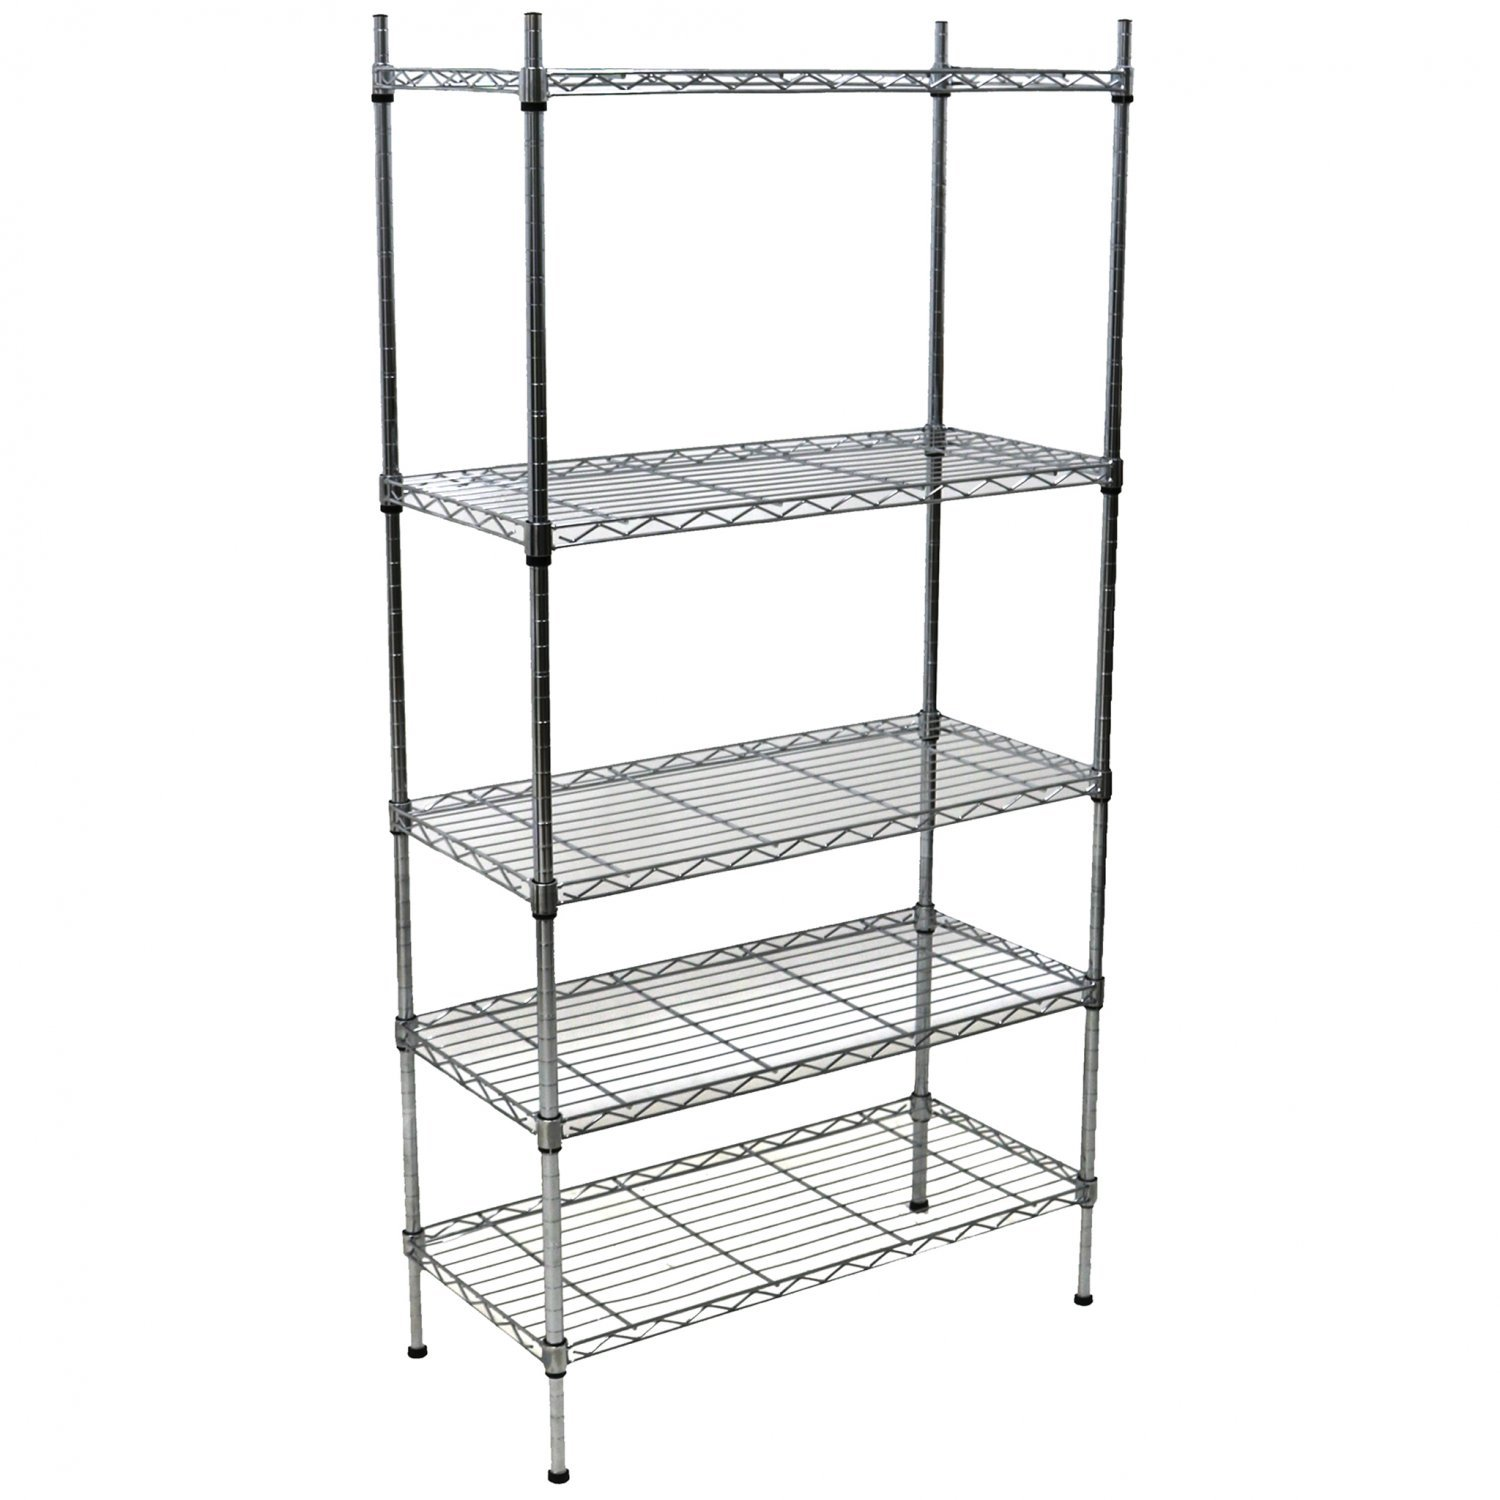 5 Tier Heavy Duty Steel Wire Rack Shelf Storage Shelving Unit ...